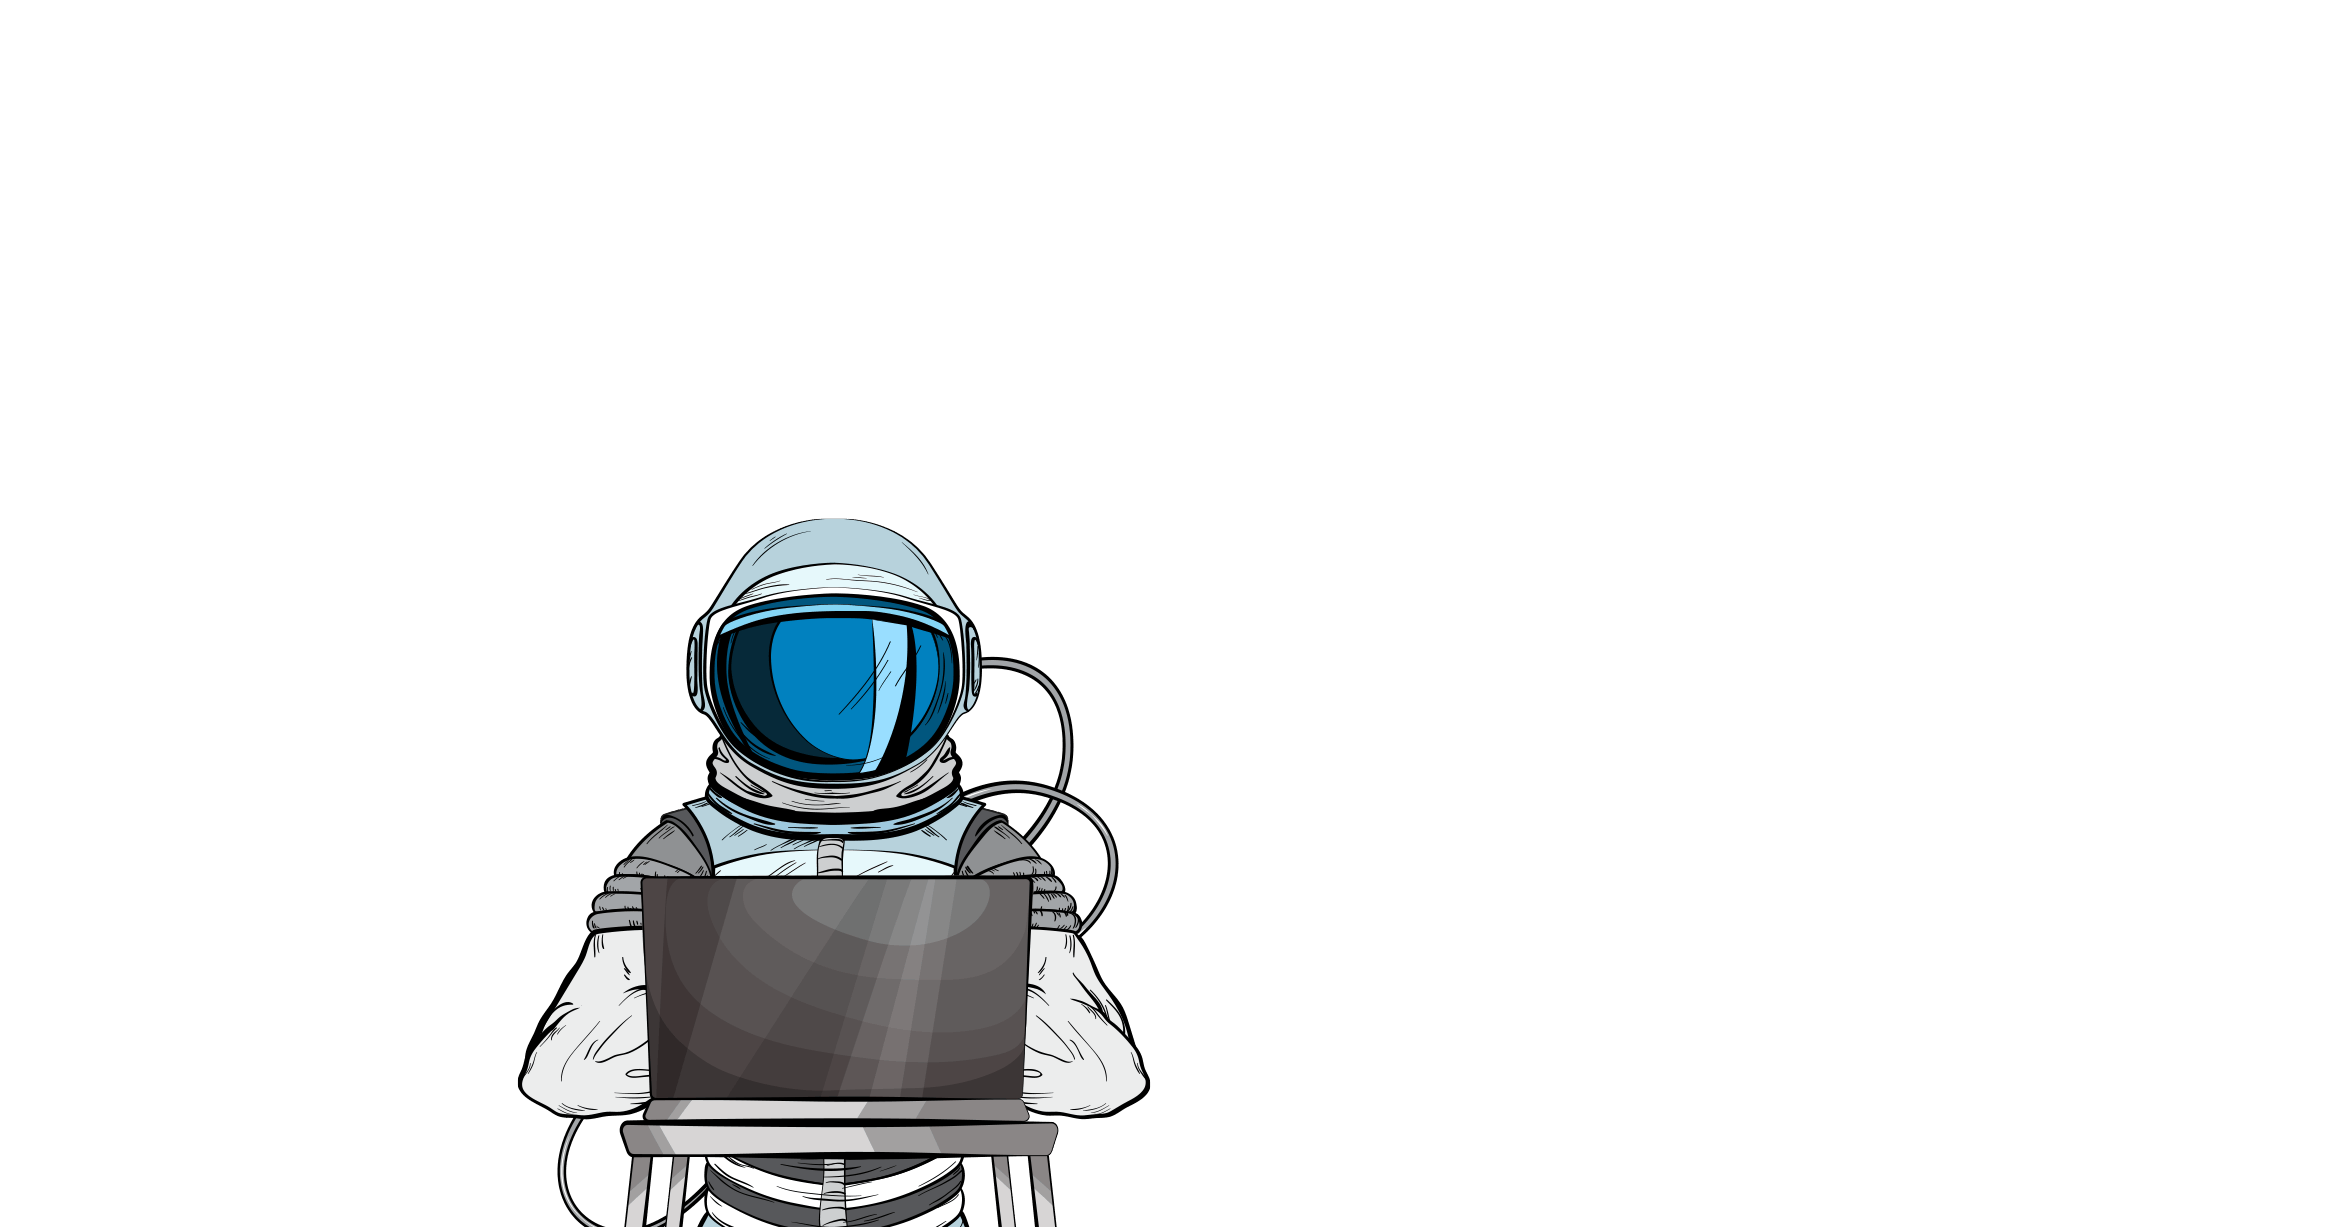 Astronaut checking online digital marketing campaign on laptop